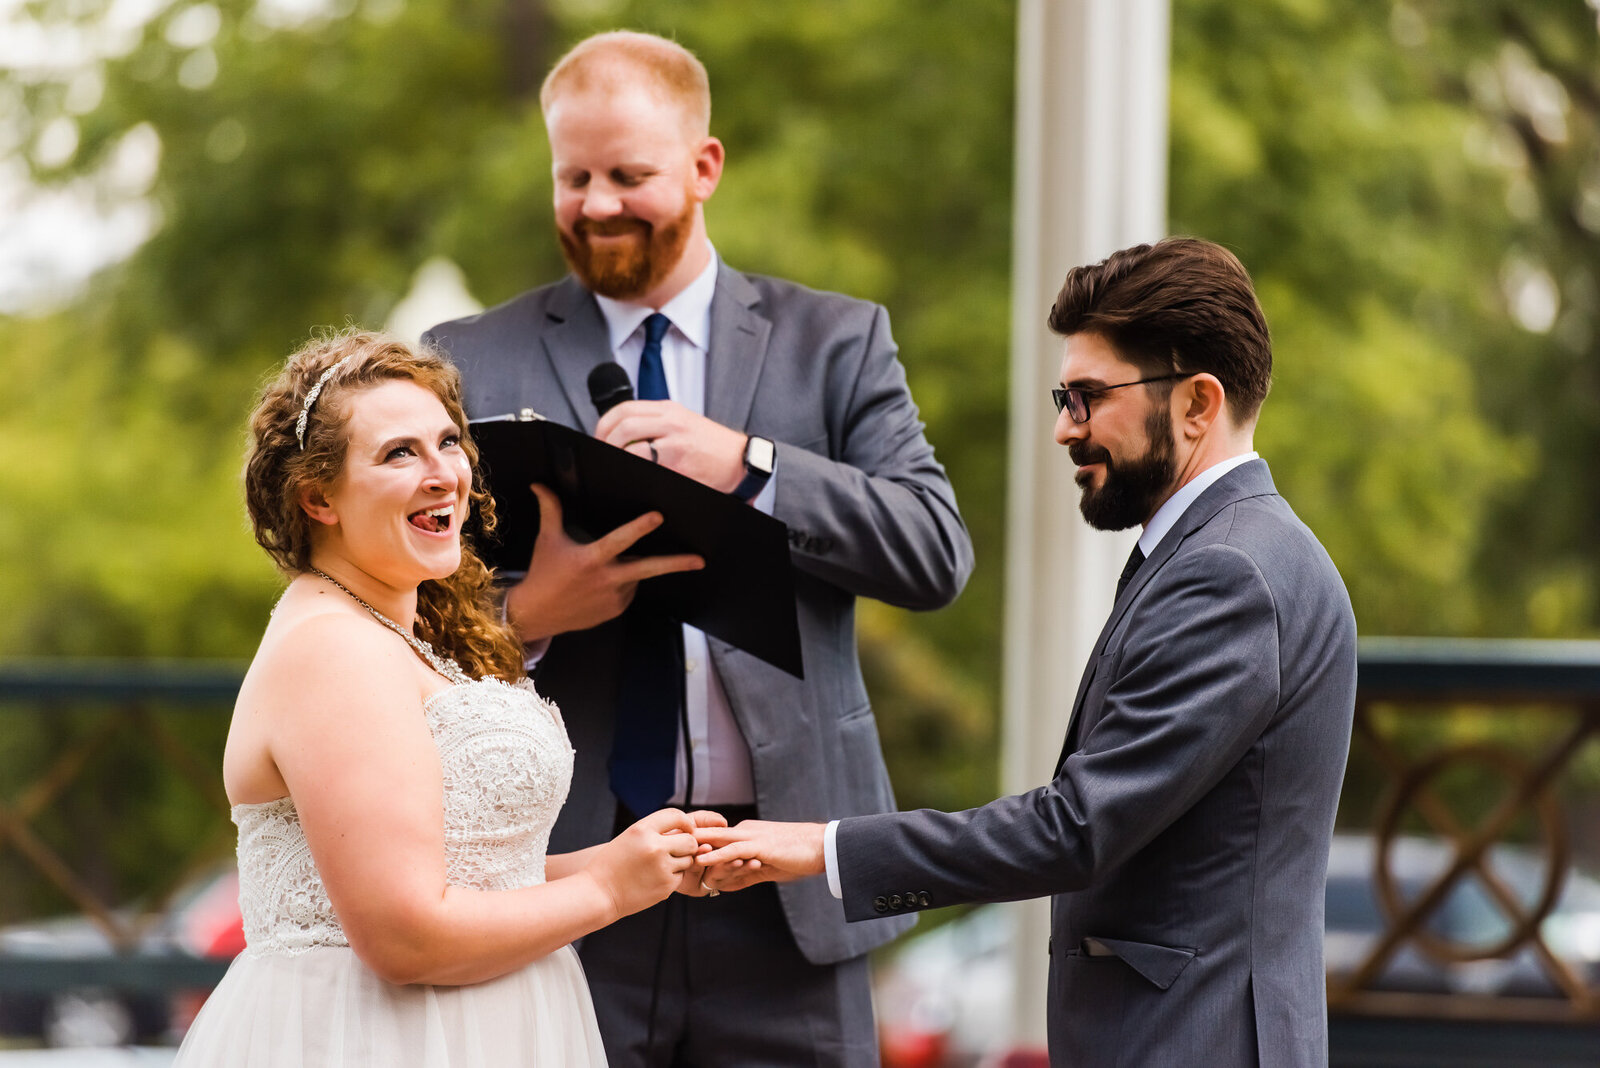 Candid moment during Tower Grove Park wedding ceremony in St. Louis